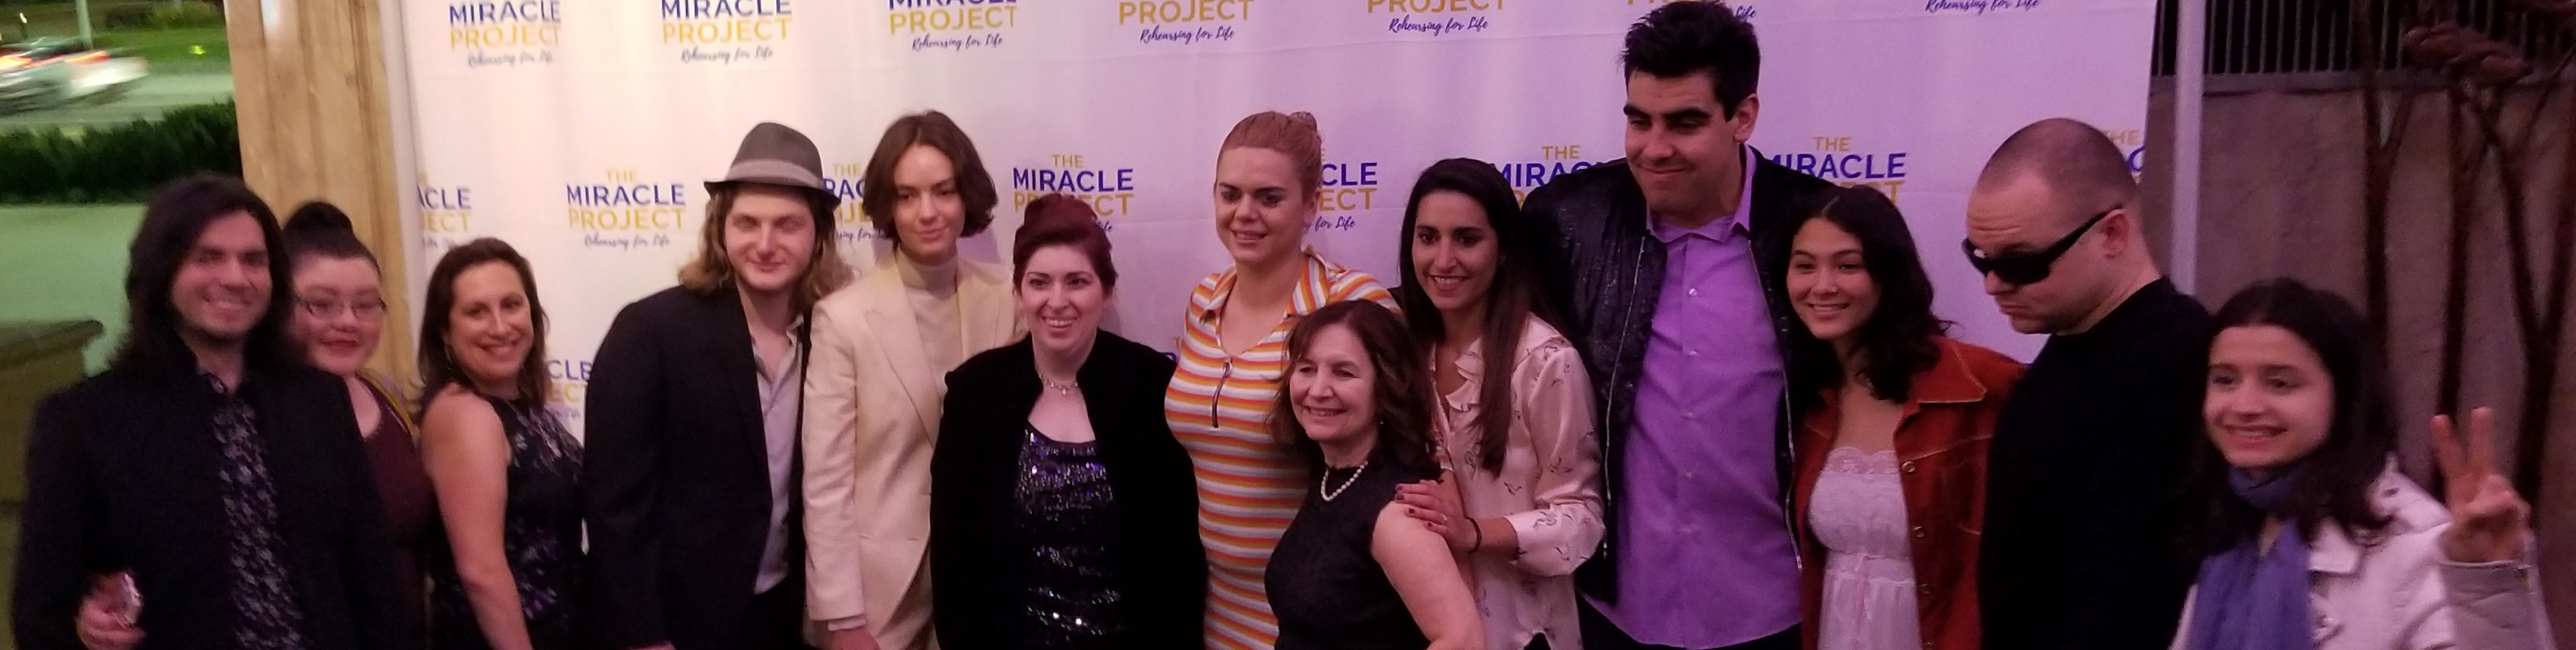 A group of cast members with Elaine Hall posing for a picture in front of a banner saying The Miracle Project